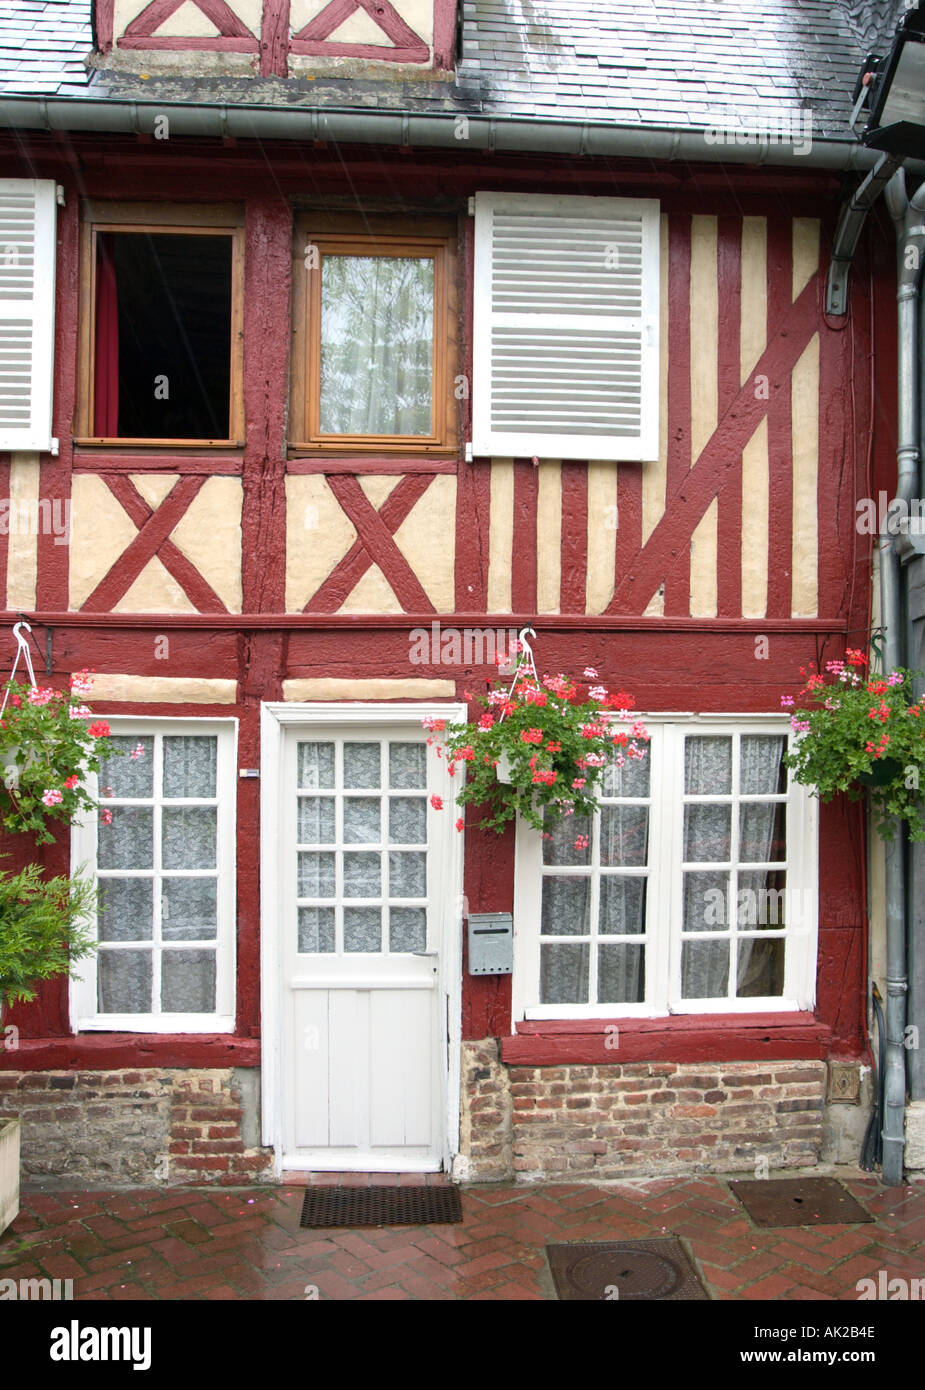 Half Timbered House in Beuvron-en-Auge, Pays d'Auge, Normandy, France - Stock Image